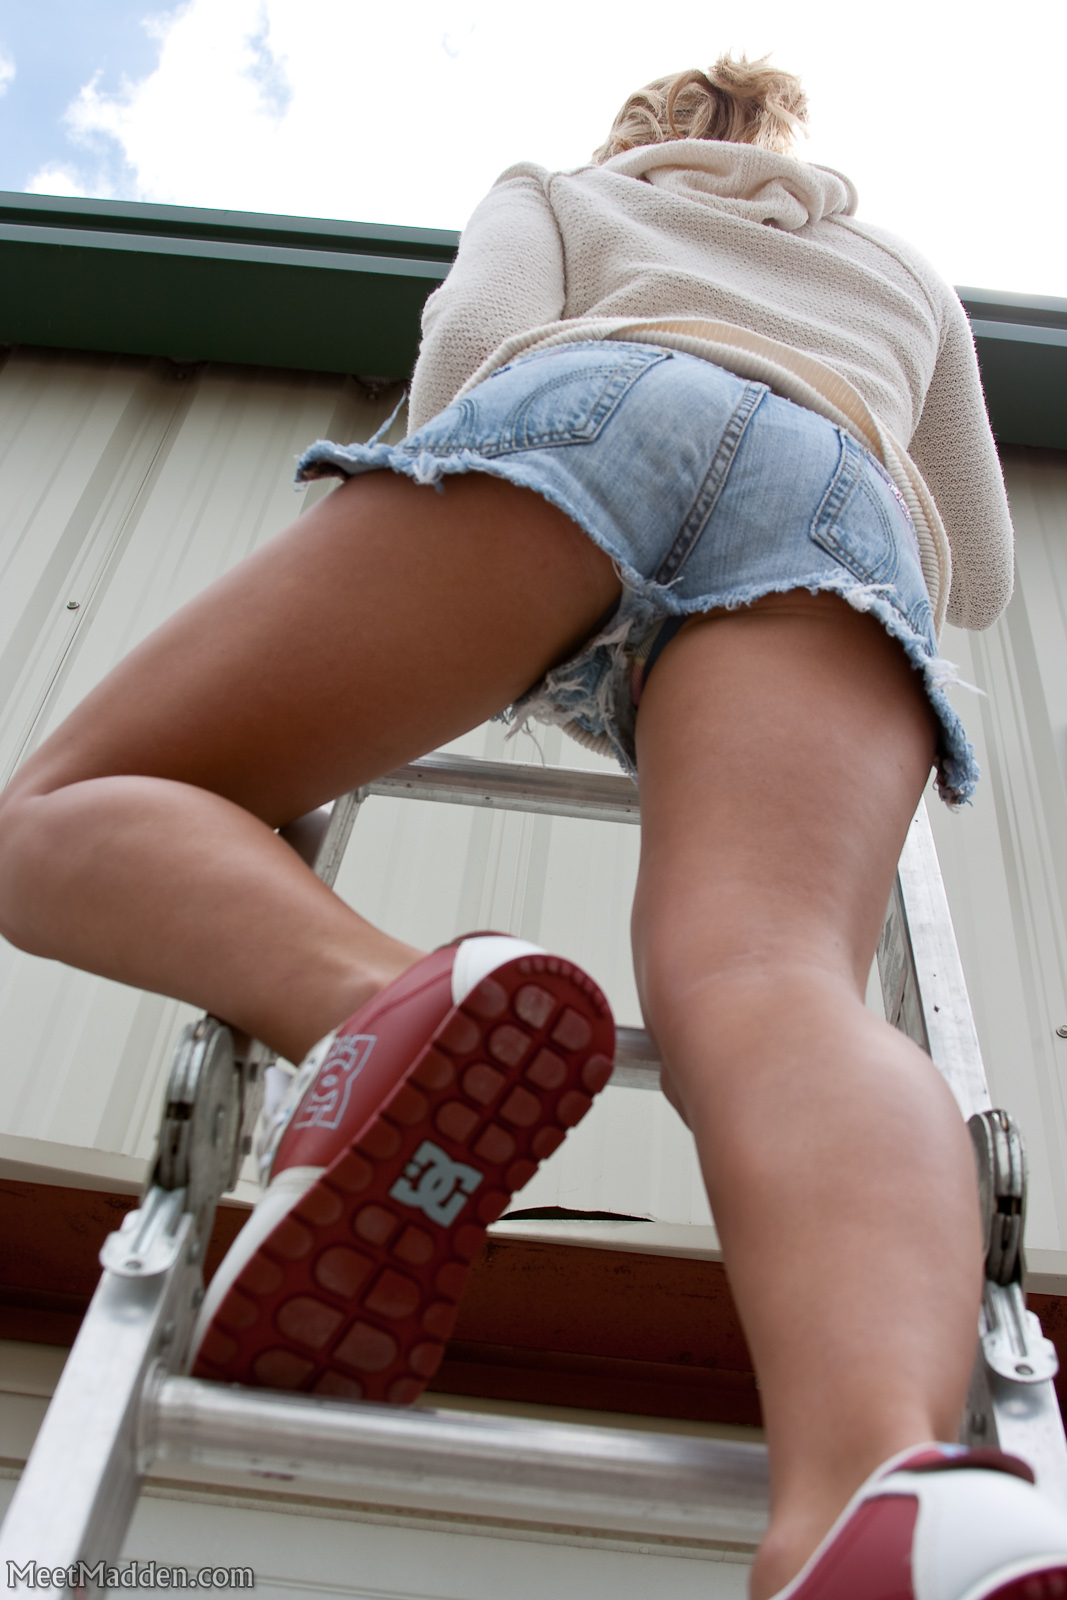 Rooftop Teen Babe - The Bunny Ranch Blog